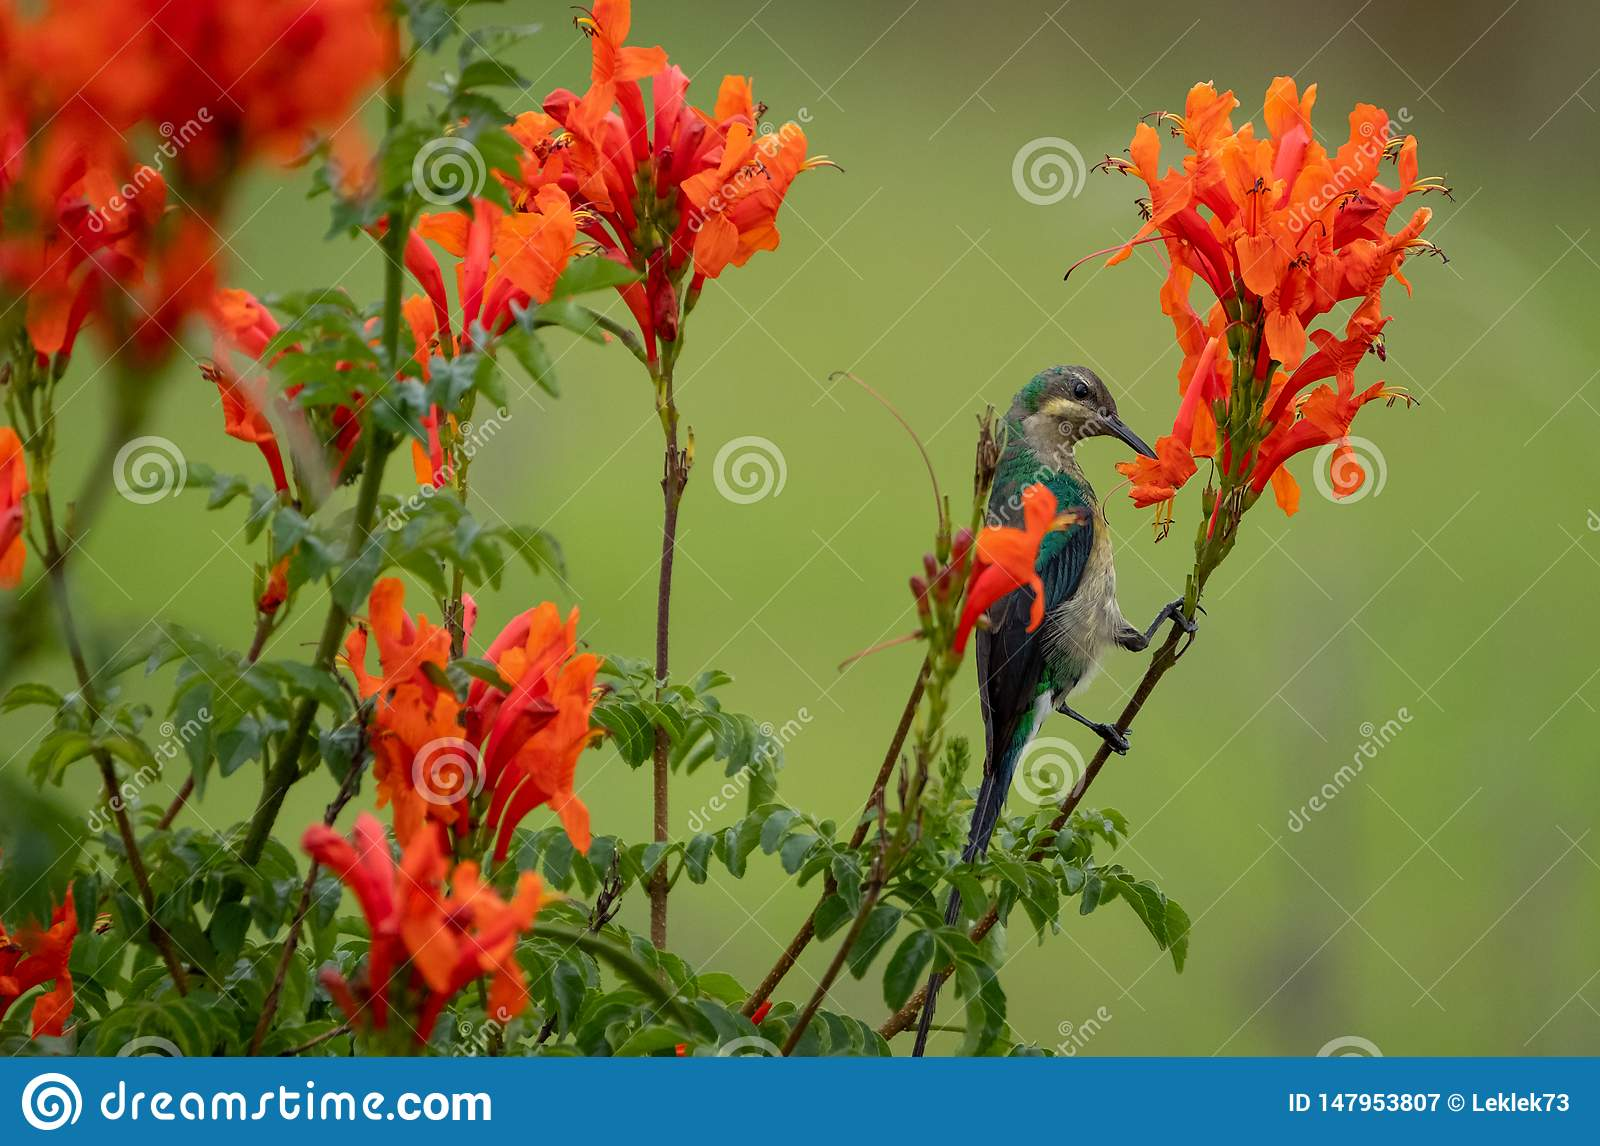 Colorful sunbird with iridescent colour feathers, photographed in the Drakensberg mountains near Cathkin Peak, South Africa